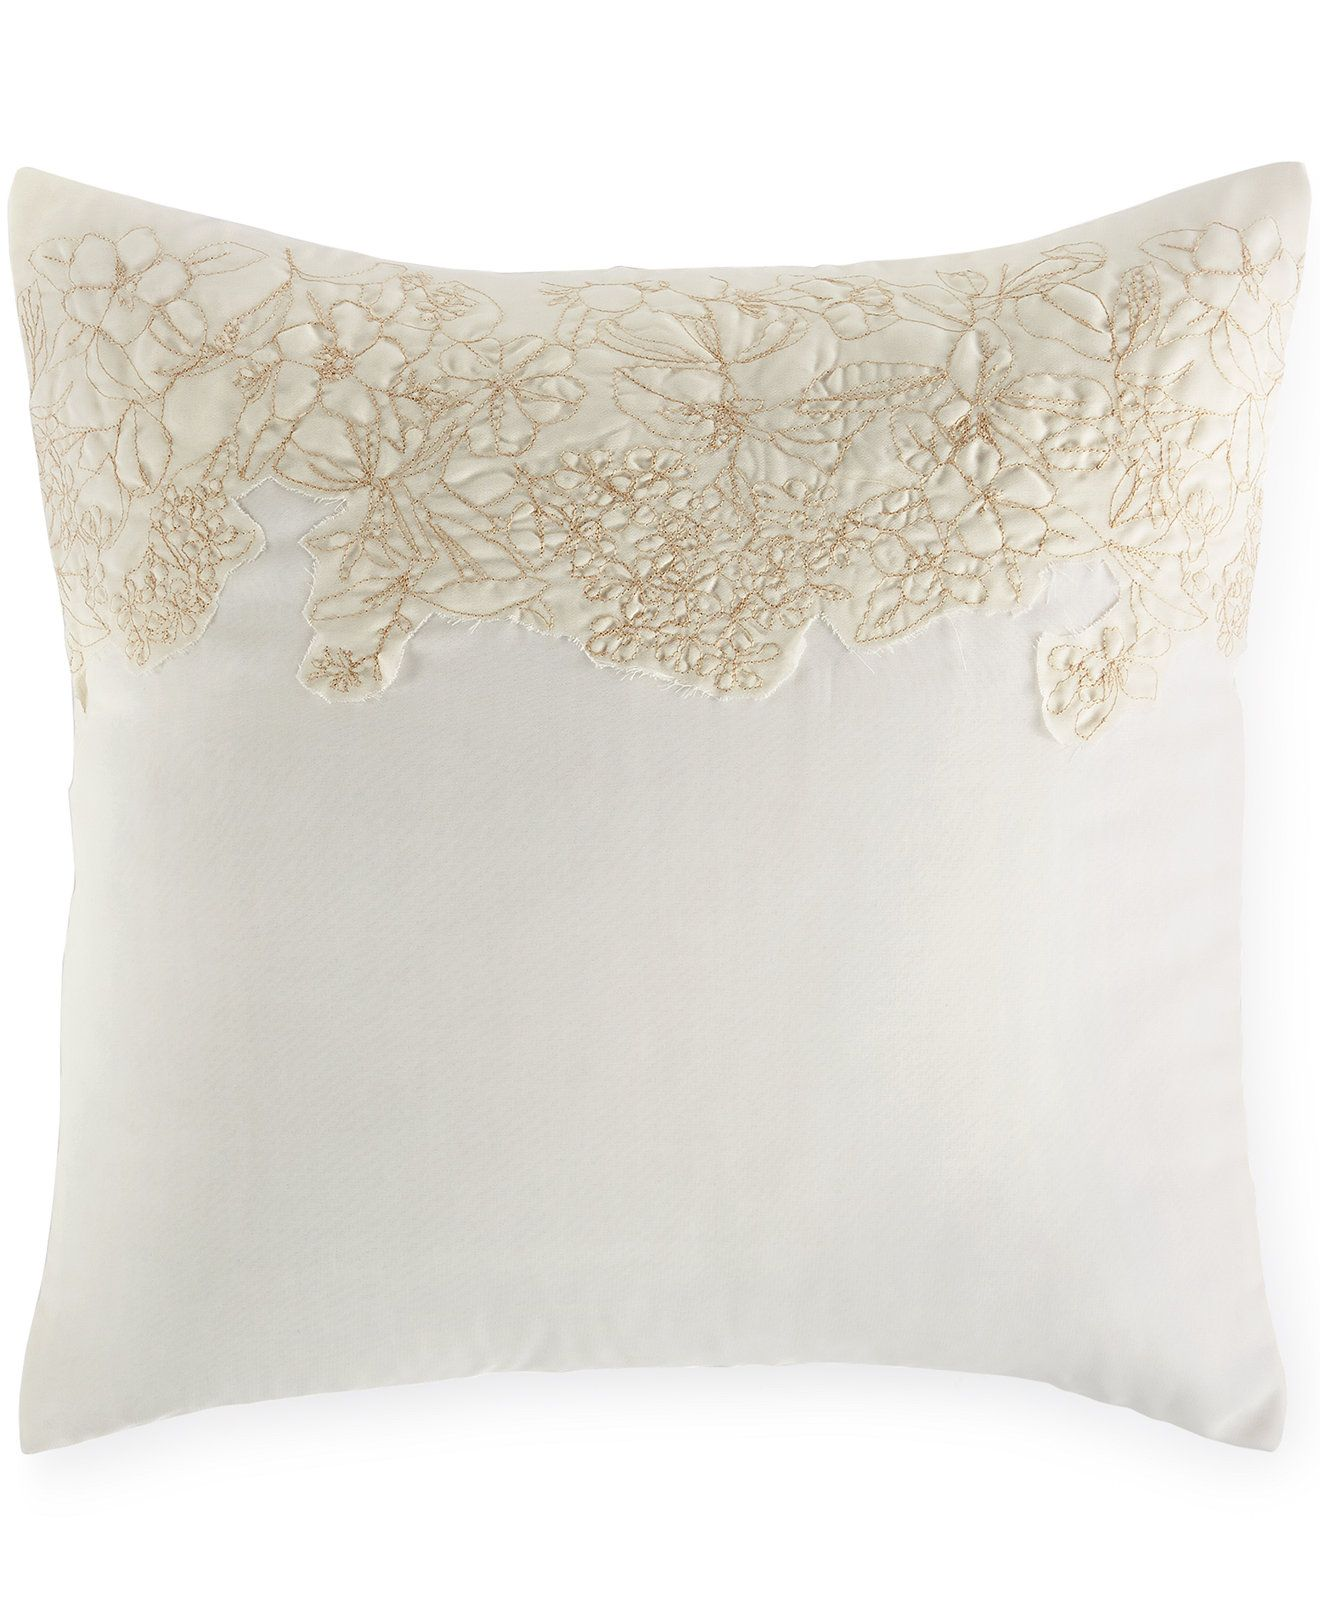 "Macy's Decorative Pillows Best Calvin Klein Embroidered Flora 18"" Square Decorative Pillow Design Inspiration"